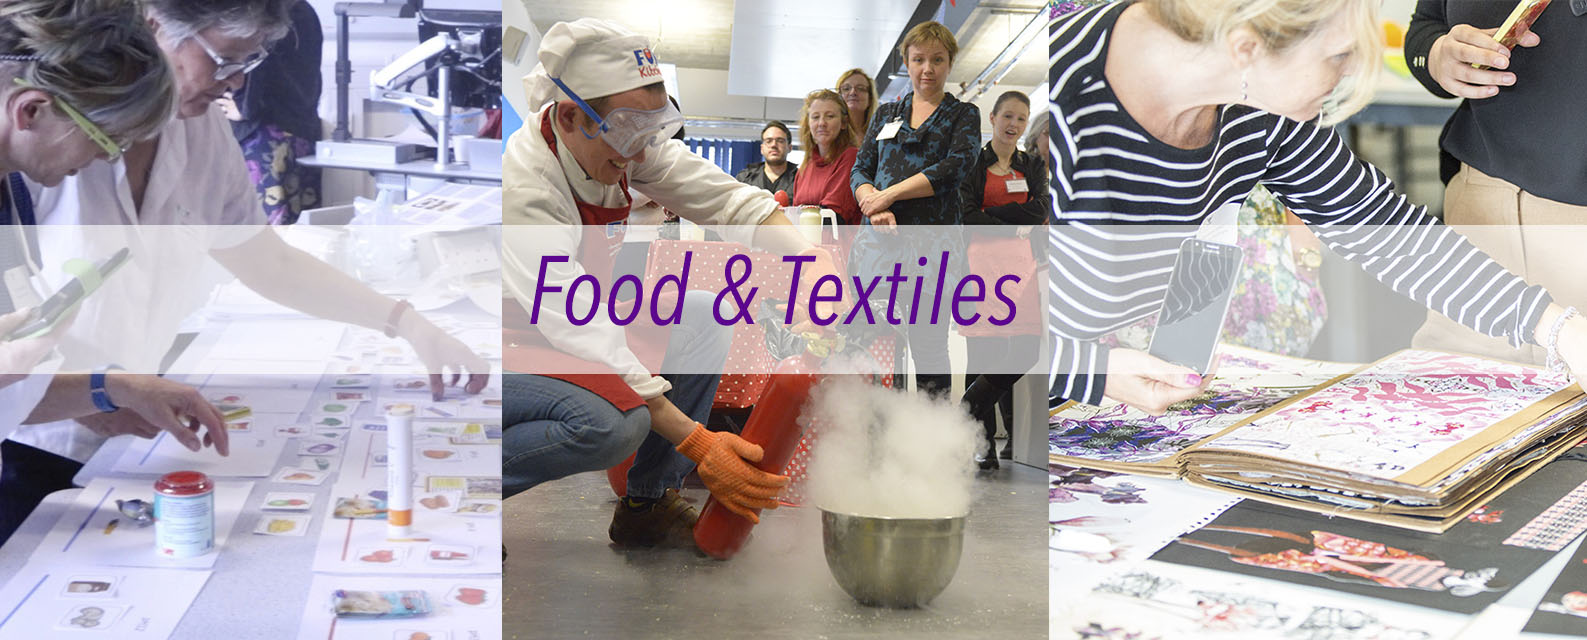 Food & Textiles Teaching Plymouth